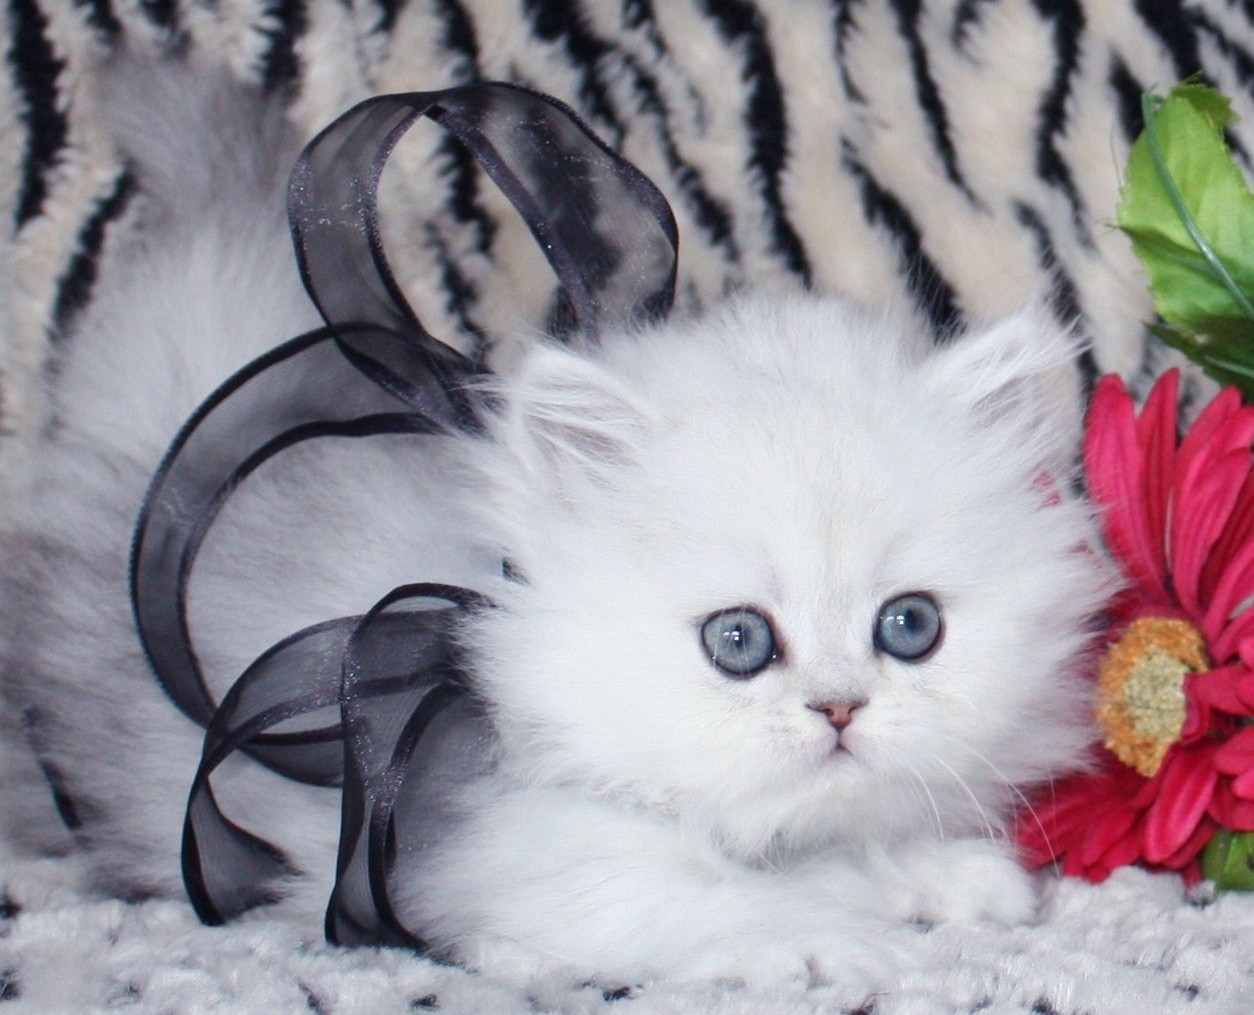 Teacup Persian Kittens 7 Cute Miniature Persian Cat